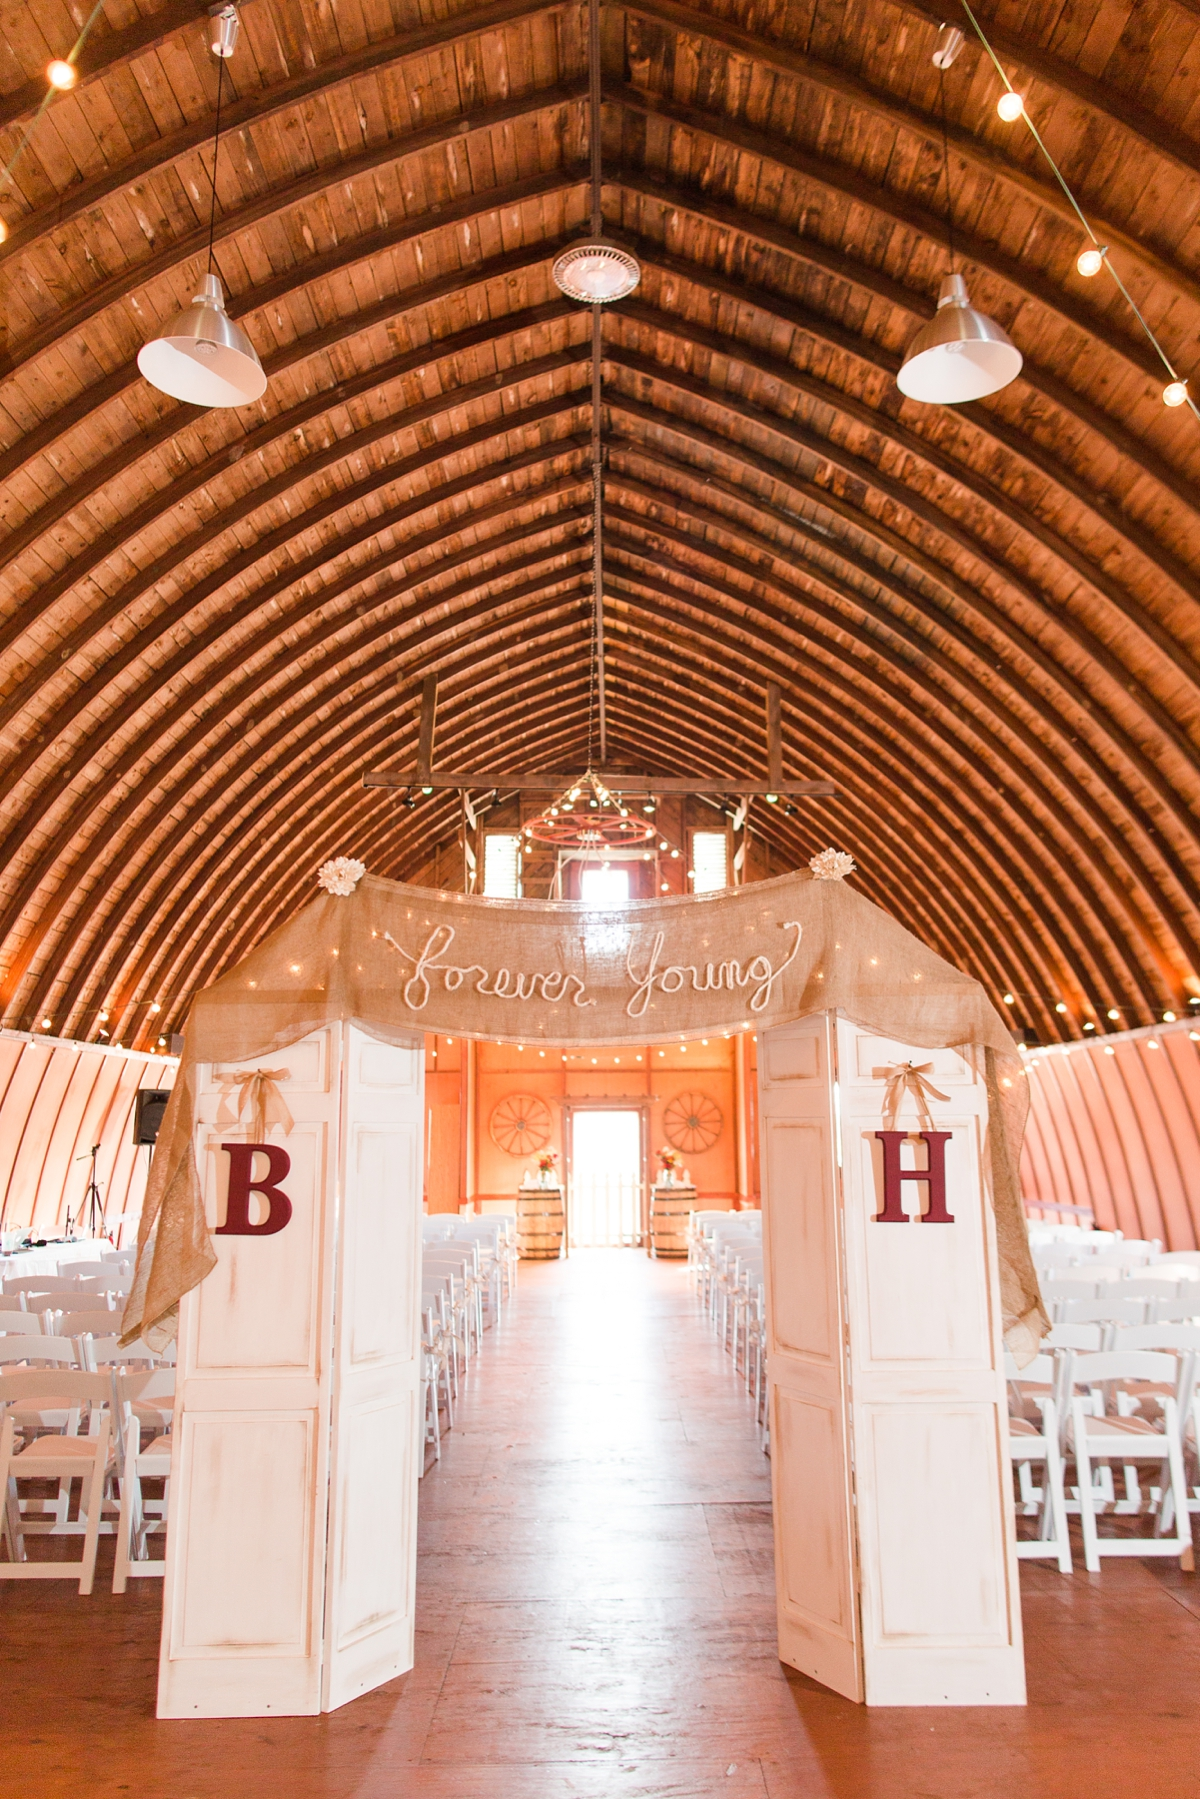 high ceiling, rafter barn wedding ceremony with rustic doors and burlap handmade banner! A Rustic Brandy Hill Farm Wedding in Culpeper, Virginia featuring accents of cranberry and gold! Photos by Katelyn James Photography